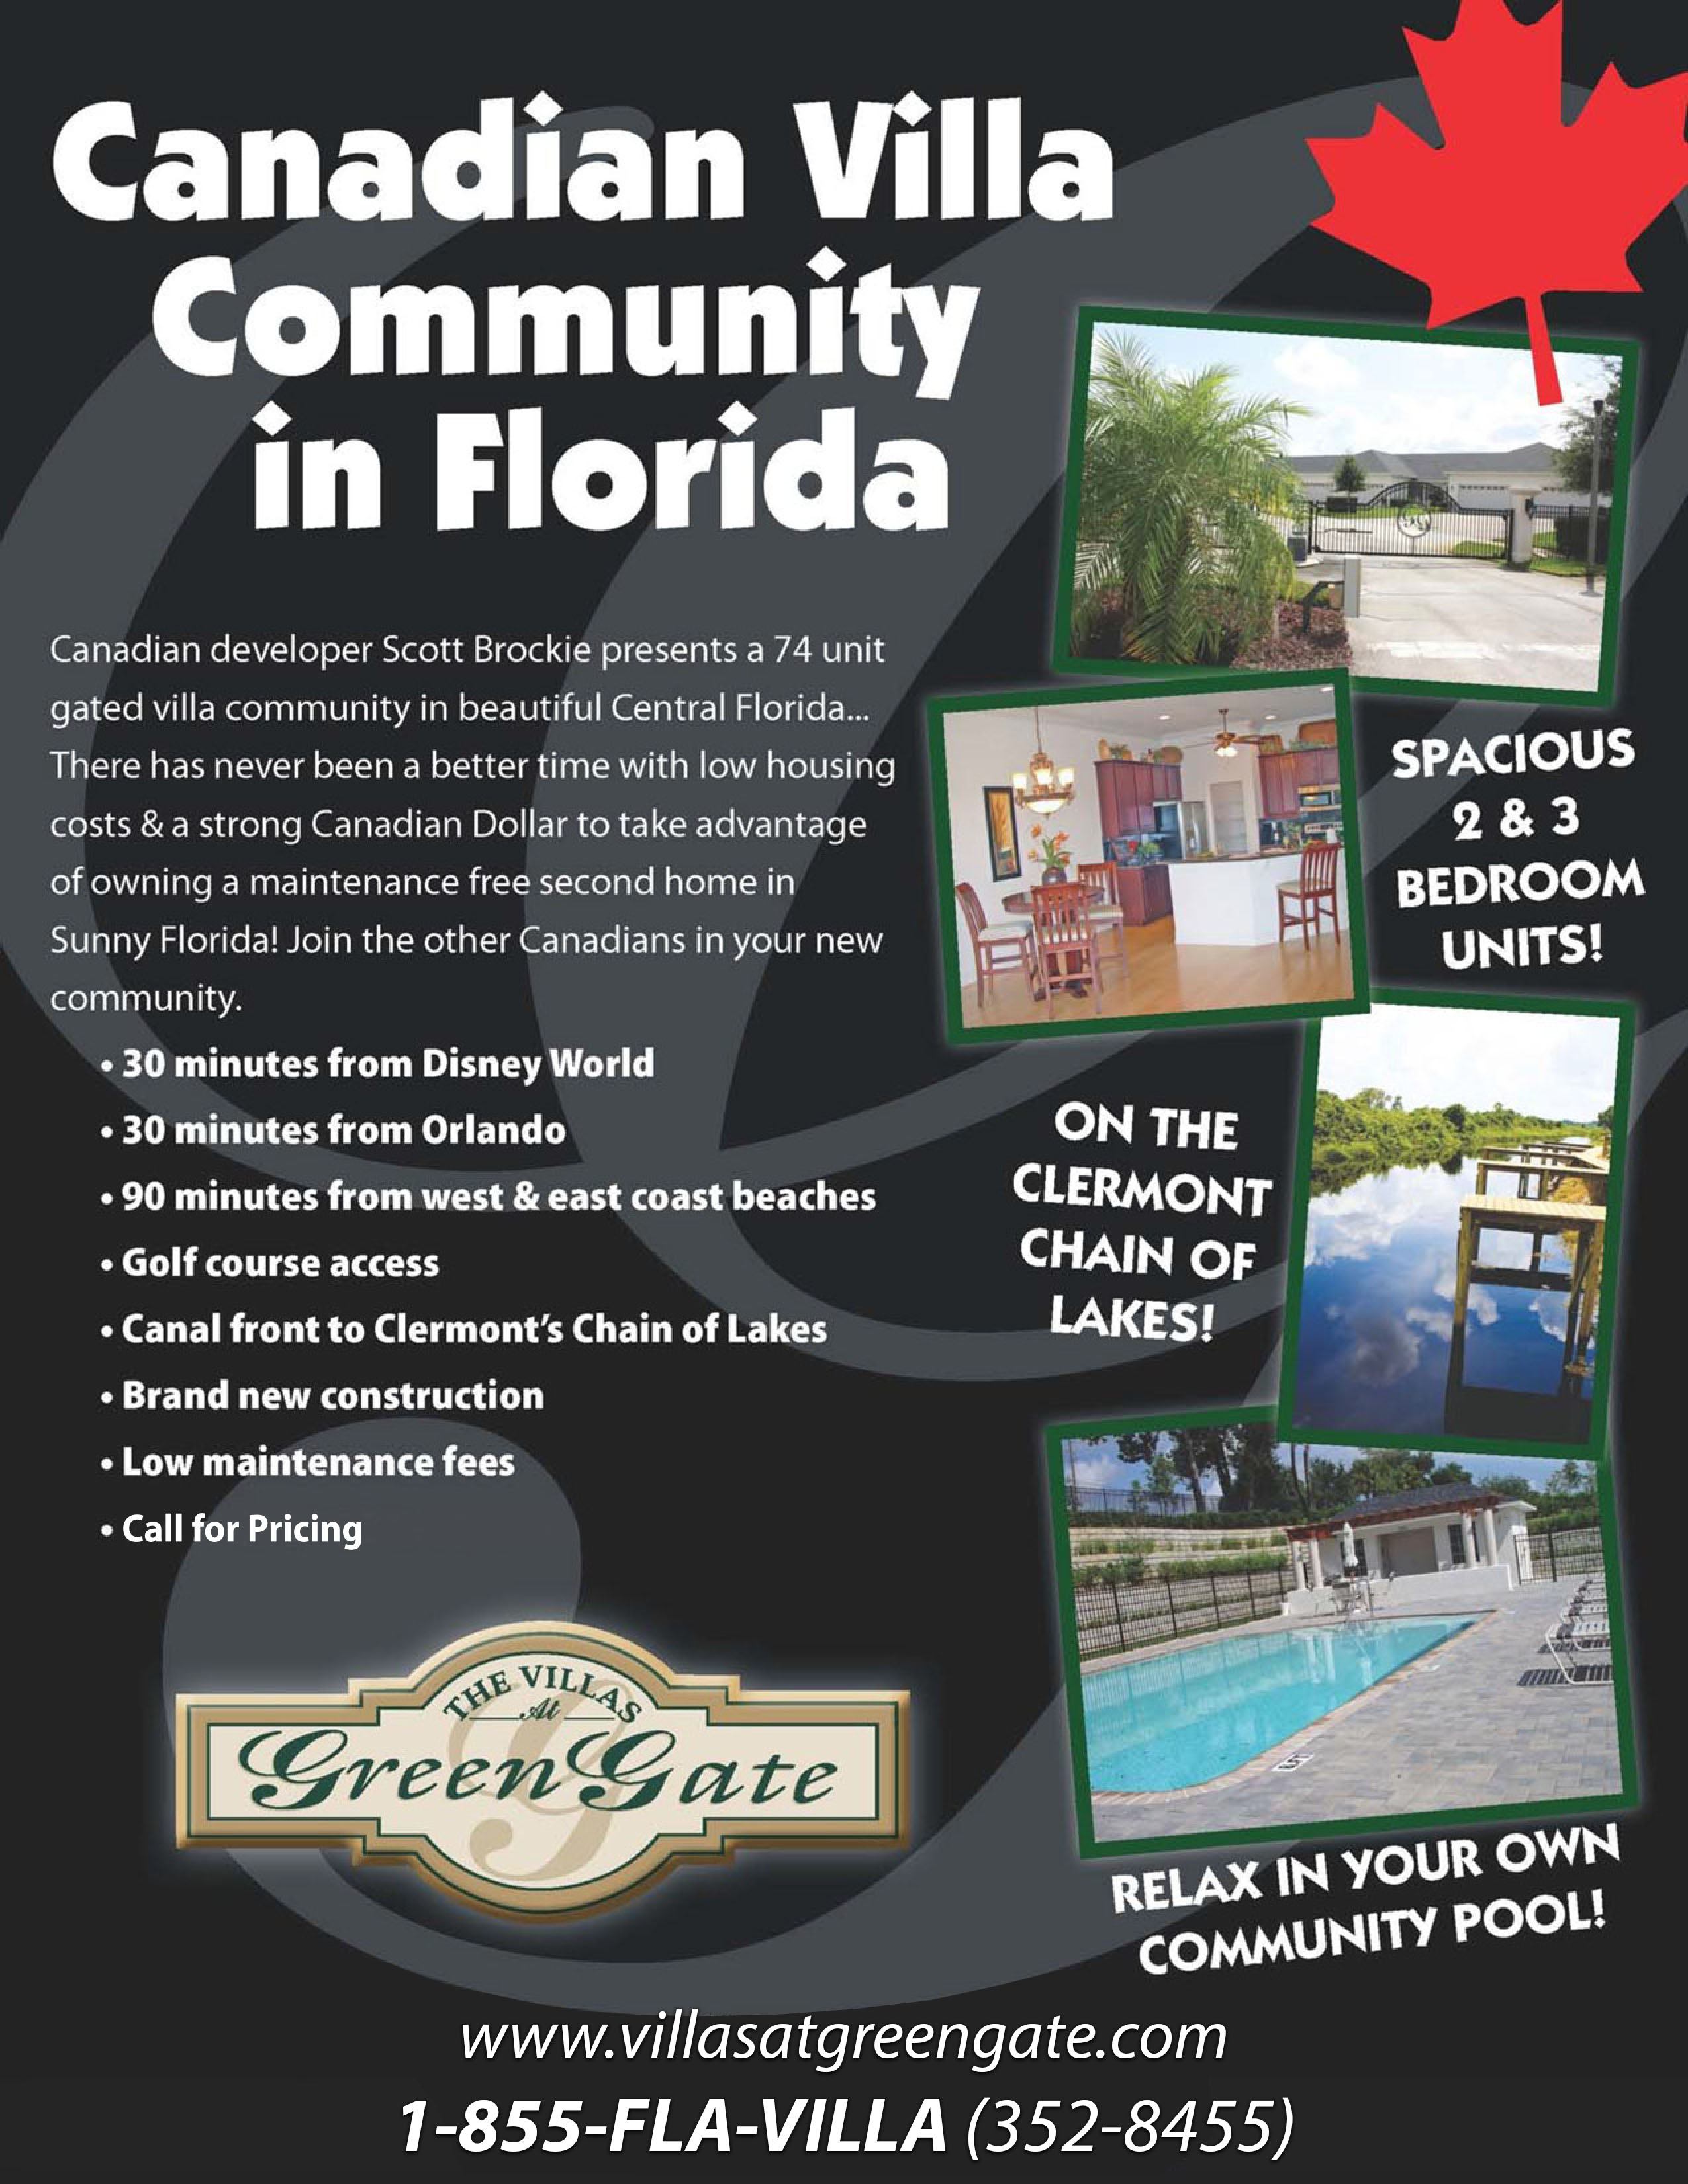 Canadian Villa Community In Florida The Villas At Greengate